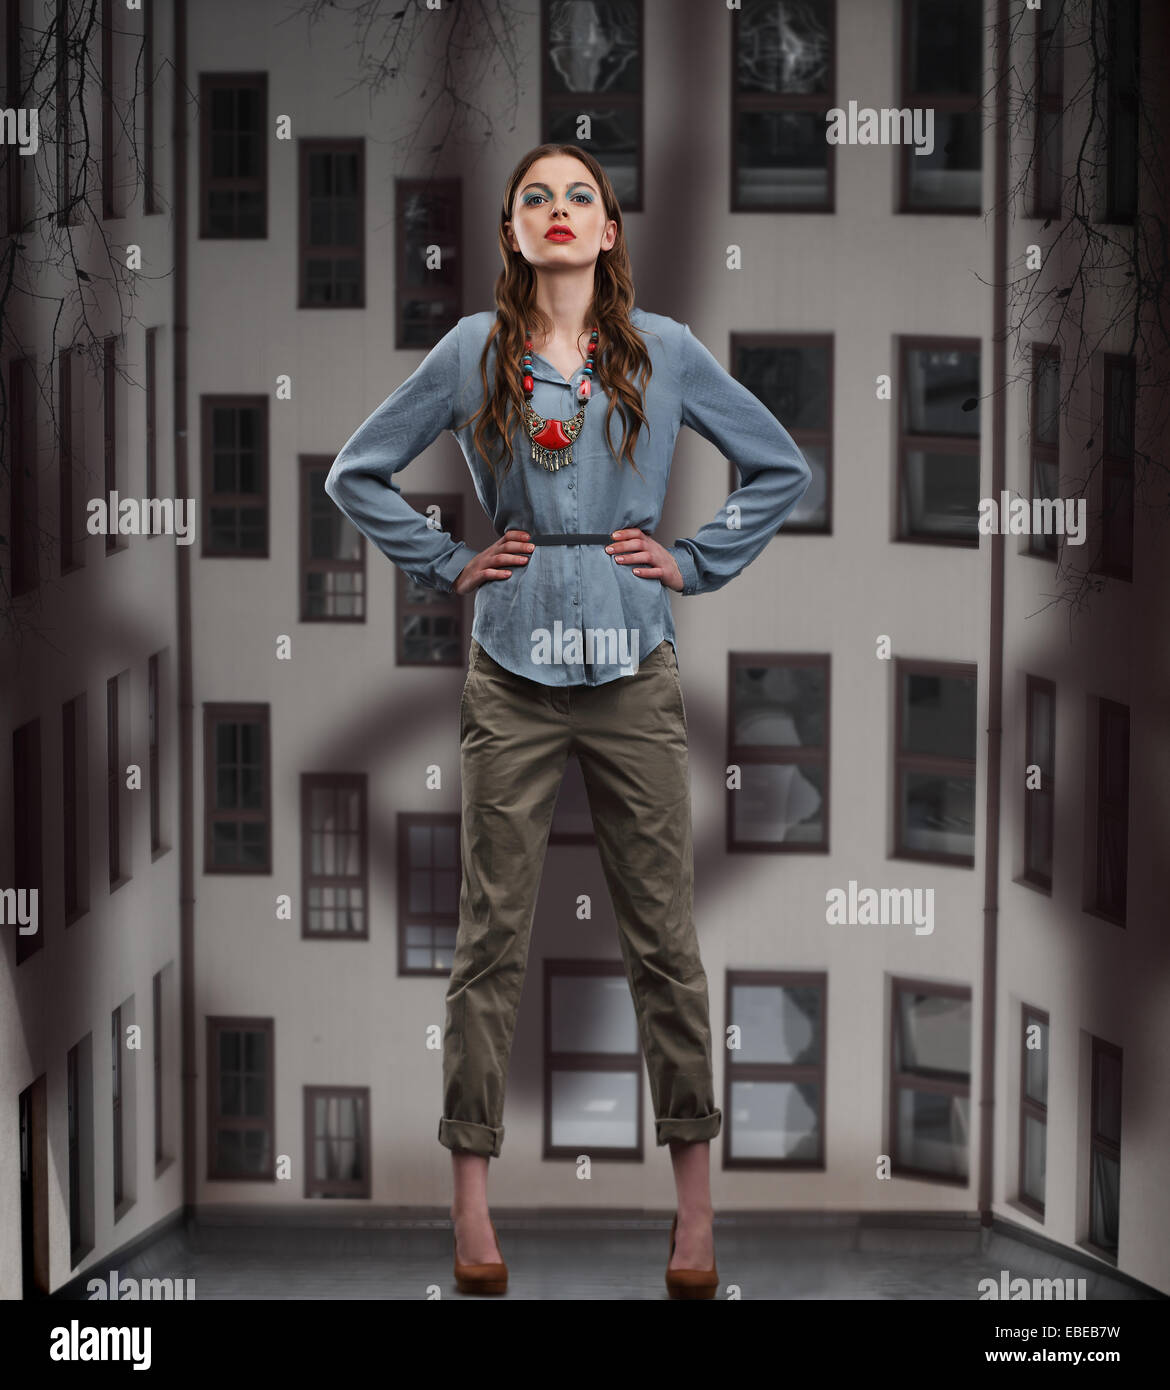 Trendy Woman posing in Pants and Blouse - Stock Image